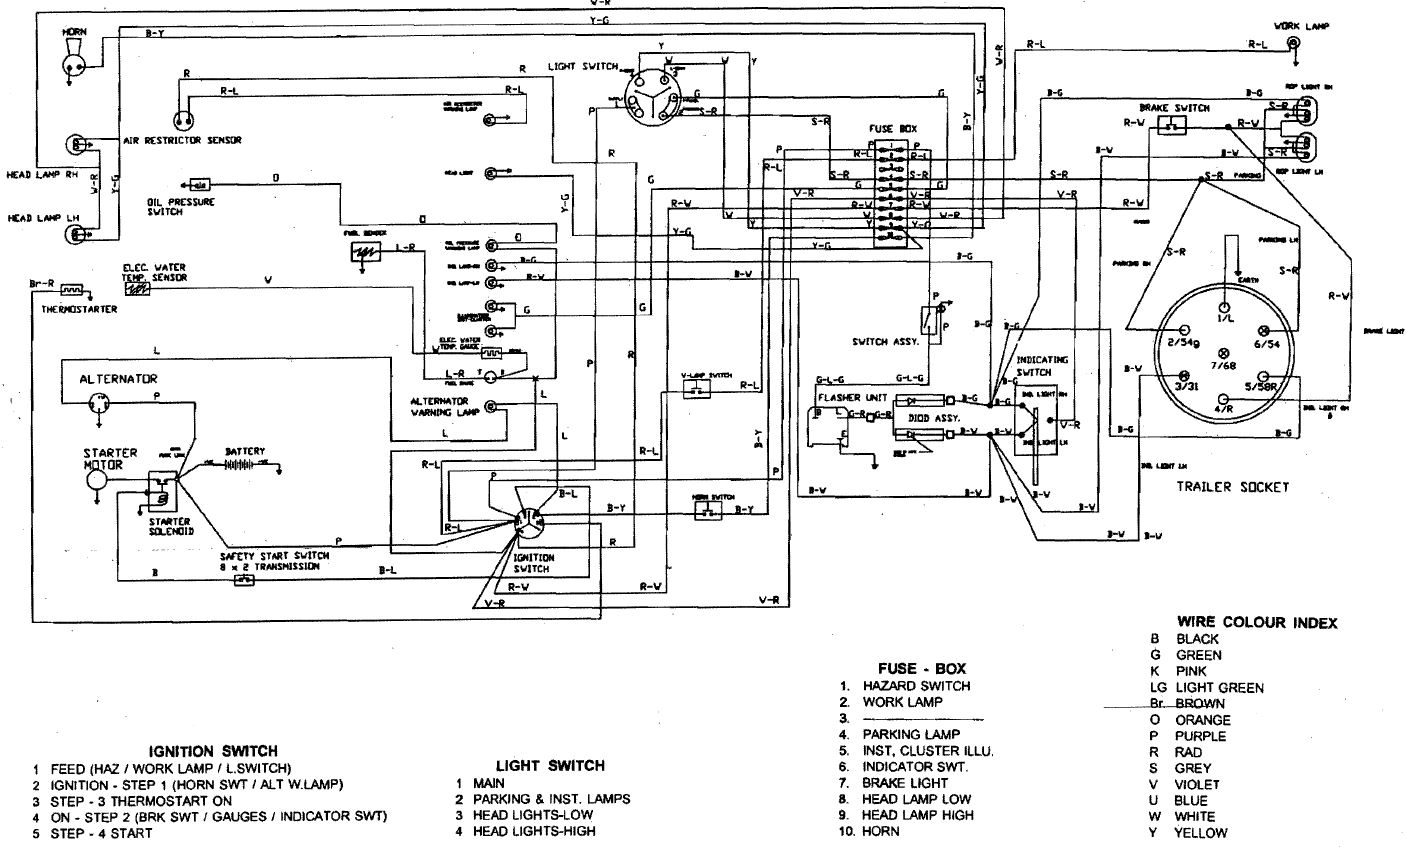 20158463319_b82d524c3d_o ignition switch wiring diagram case 530 tractor wiring diagram at soozxer.org